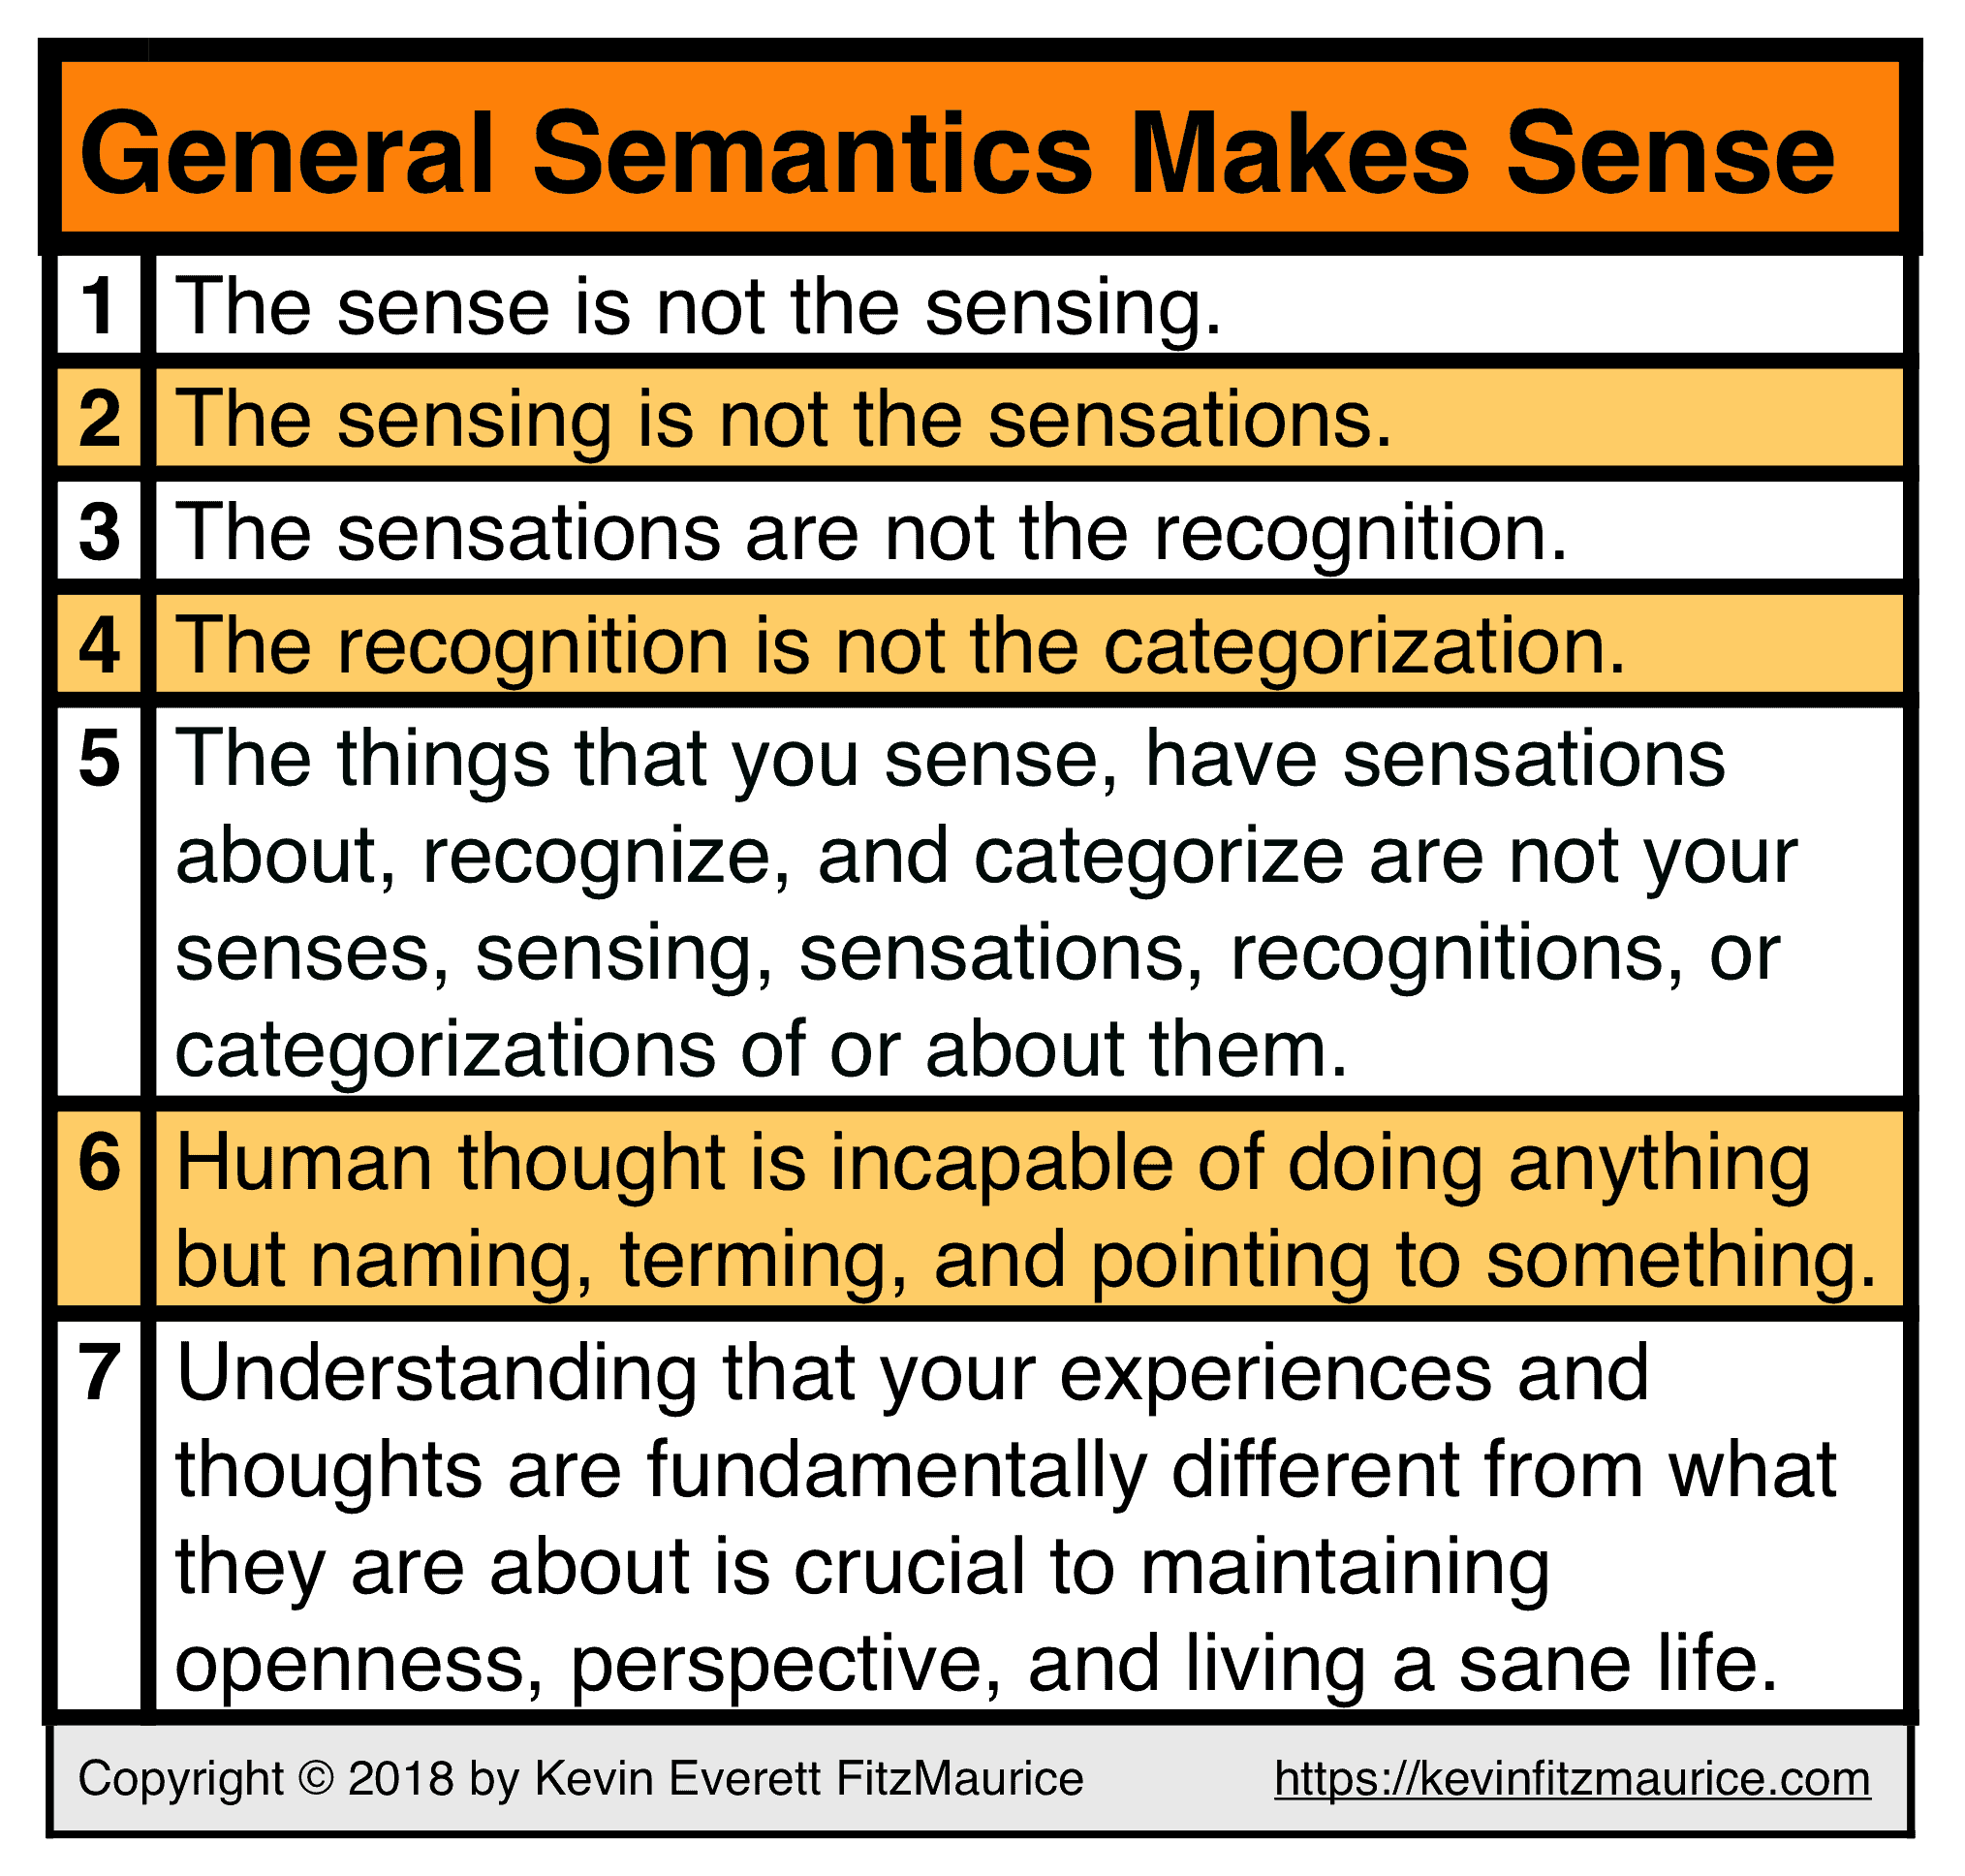 Make Sense Using General Semantics